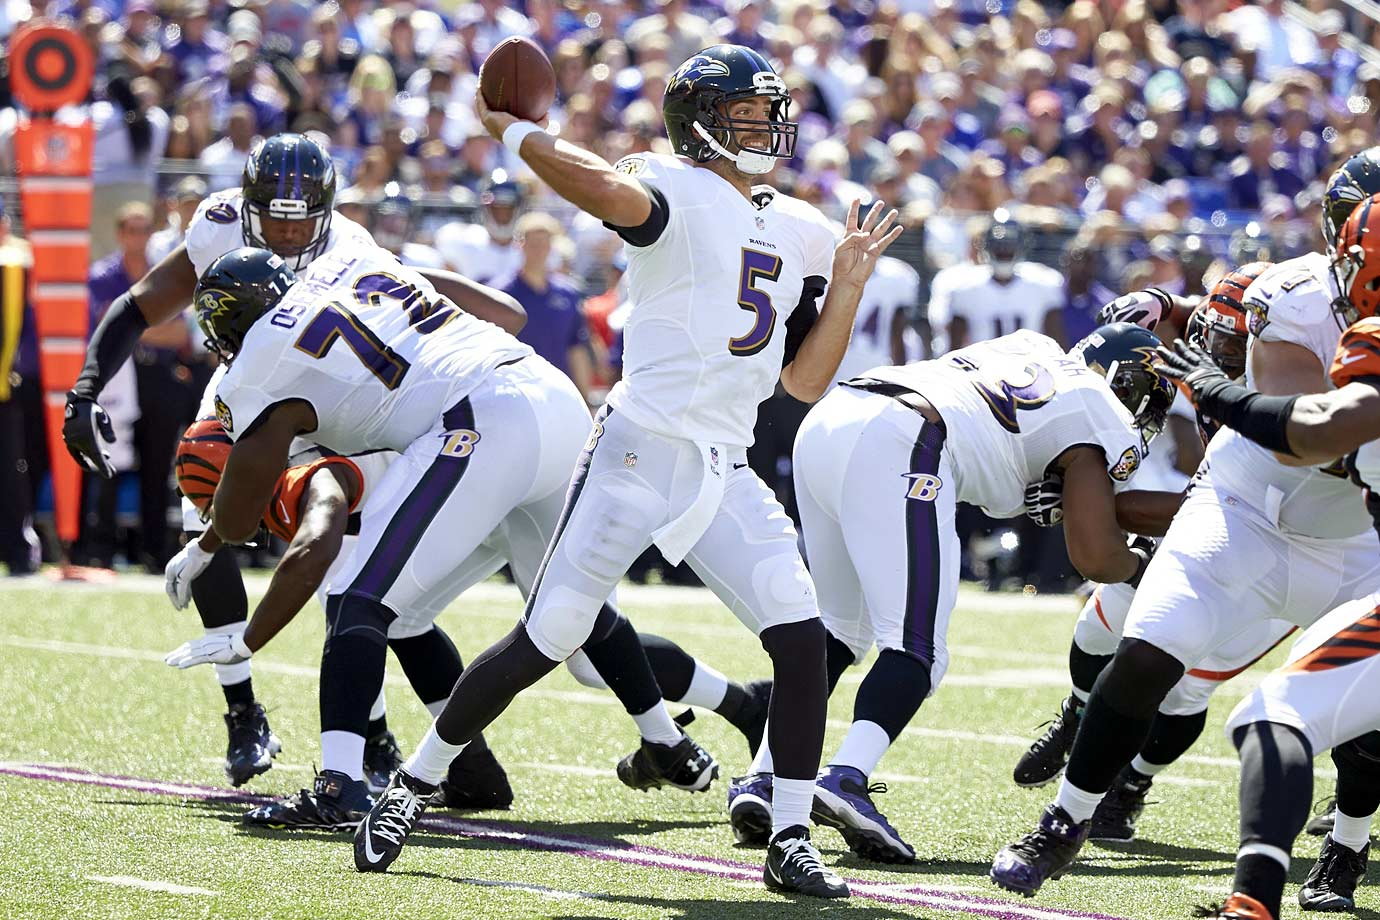 Lost in all the silly surface talk about whether Flacco is elite or not (an argument that should have been put to bed after Super Bowl XLVII) is the fact that two years after the Ravens won it all on the back of his 11–0 touchdown-to-interception differential in the playoffs, Flacco had his best overall season in 2014 following a disappointing 2013 season.